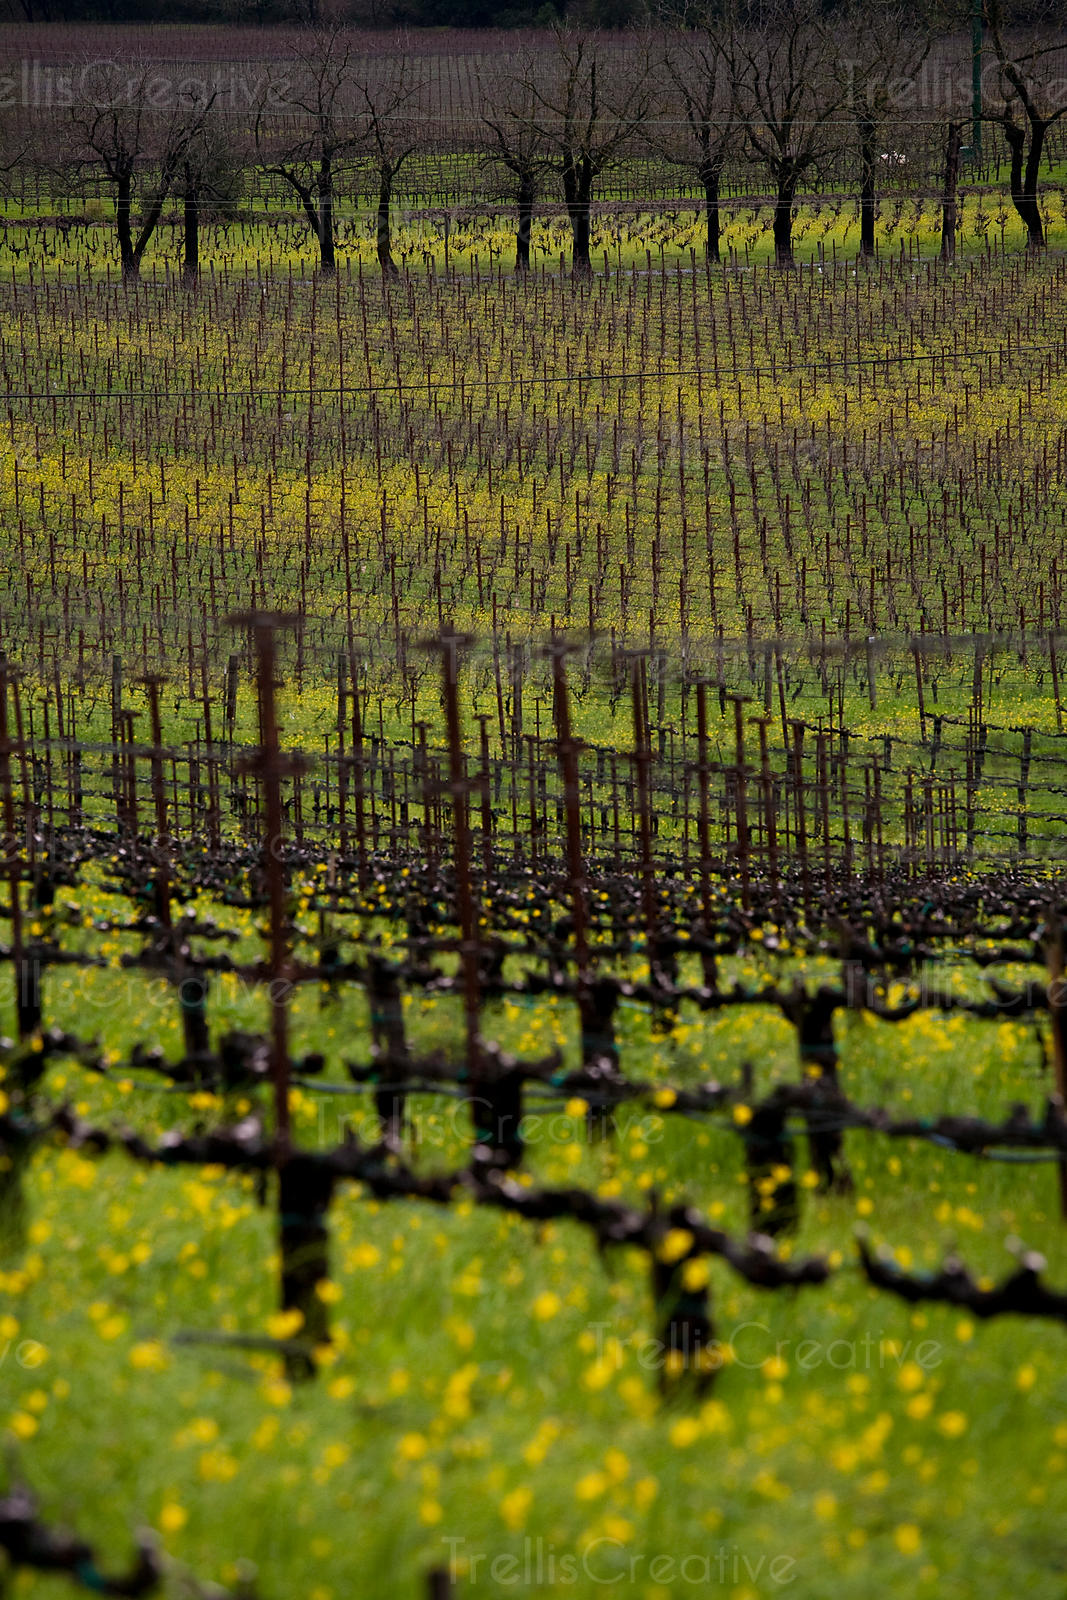 Looking out across a dormant winter vineyard in Napa Valley